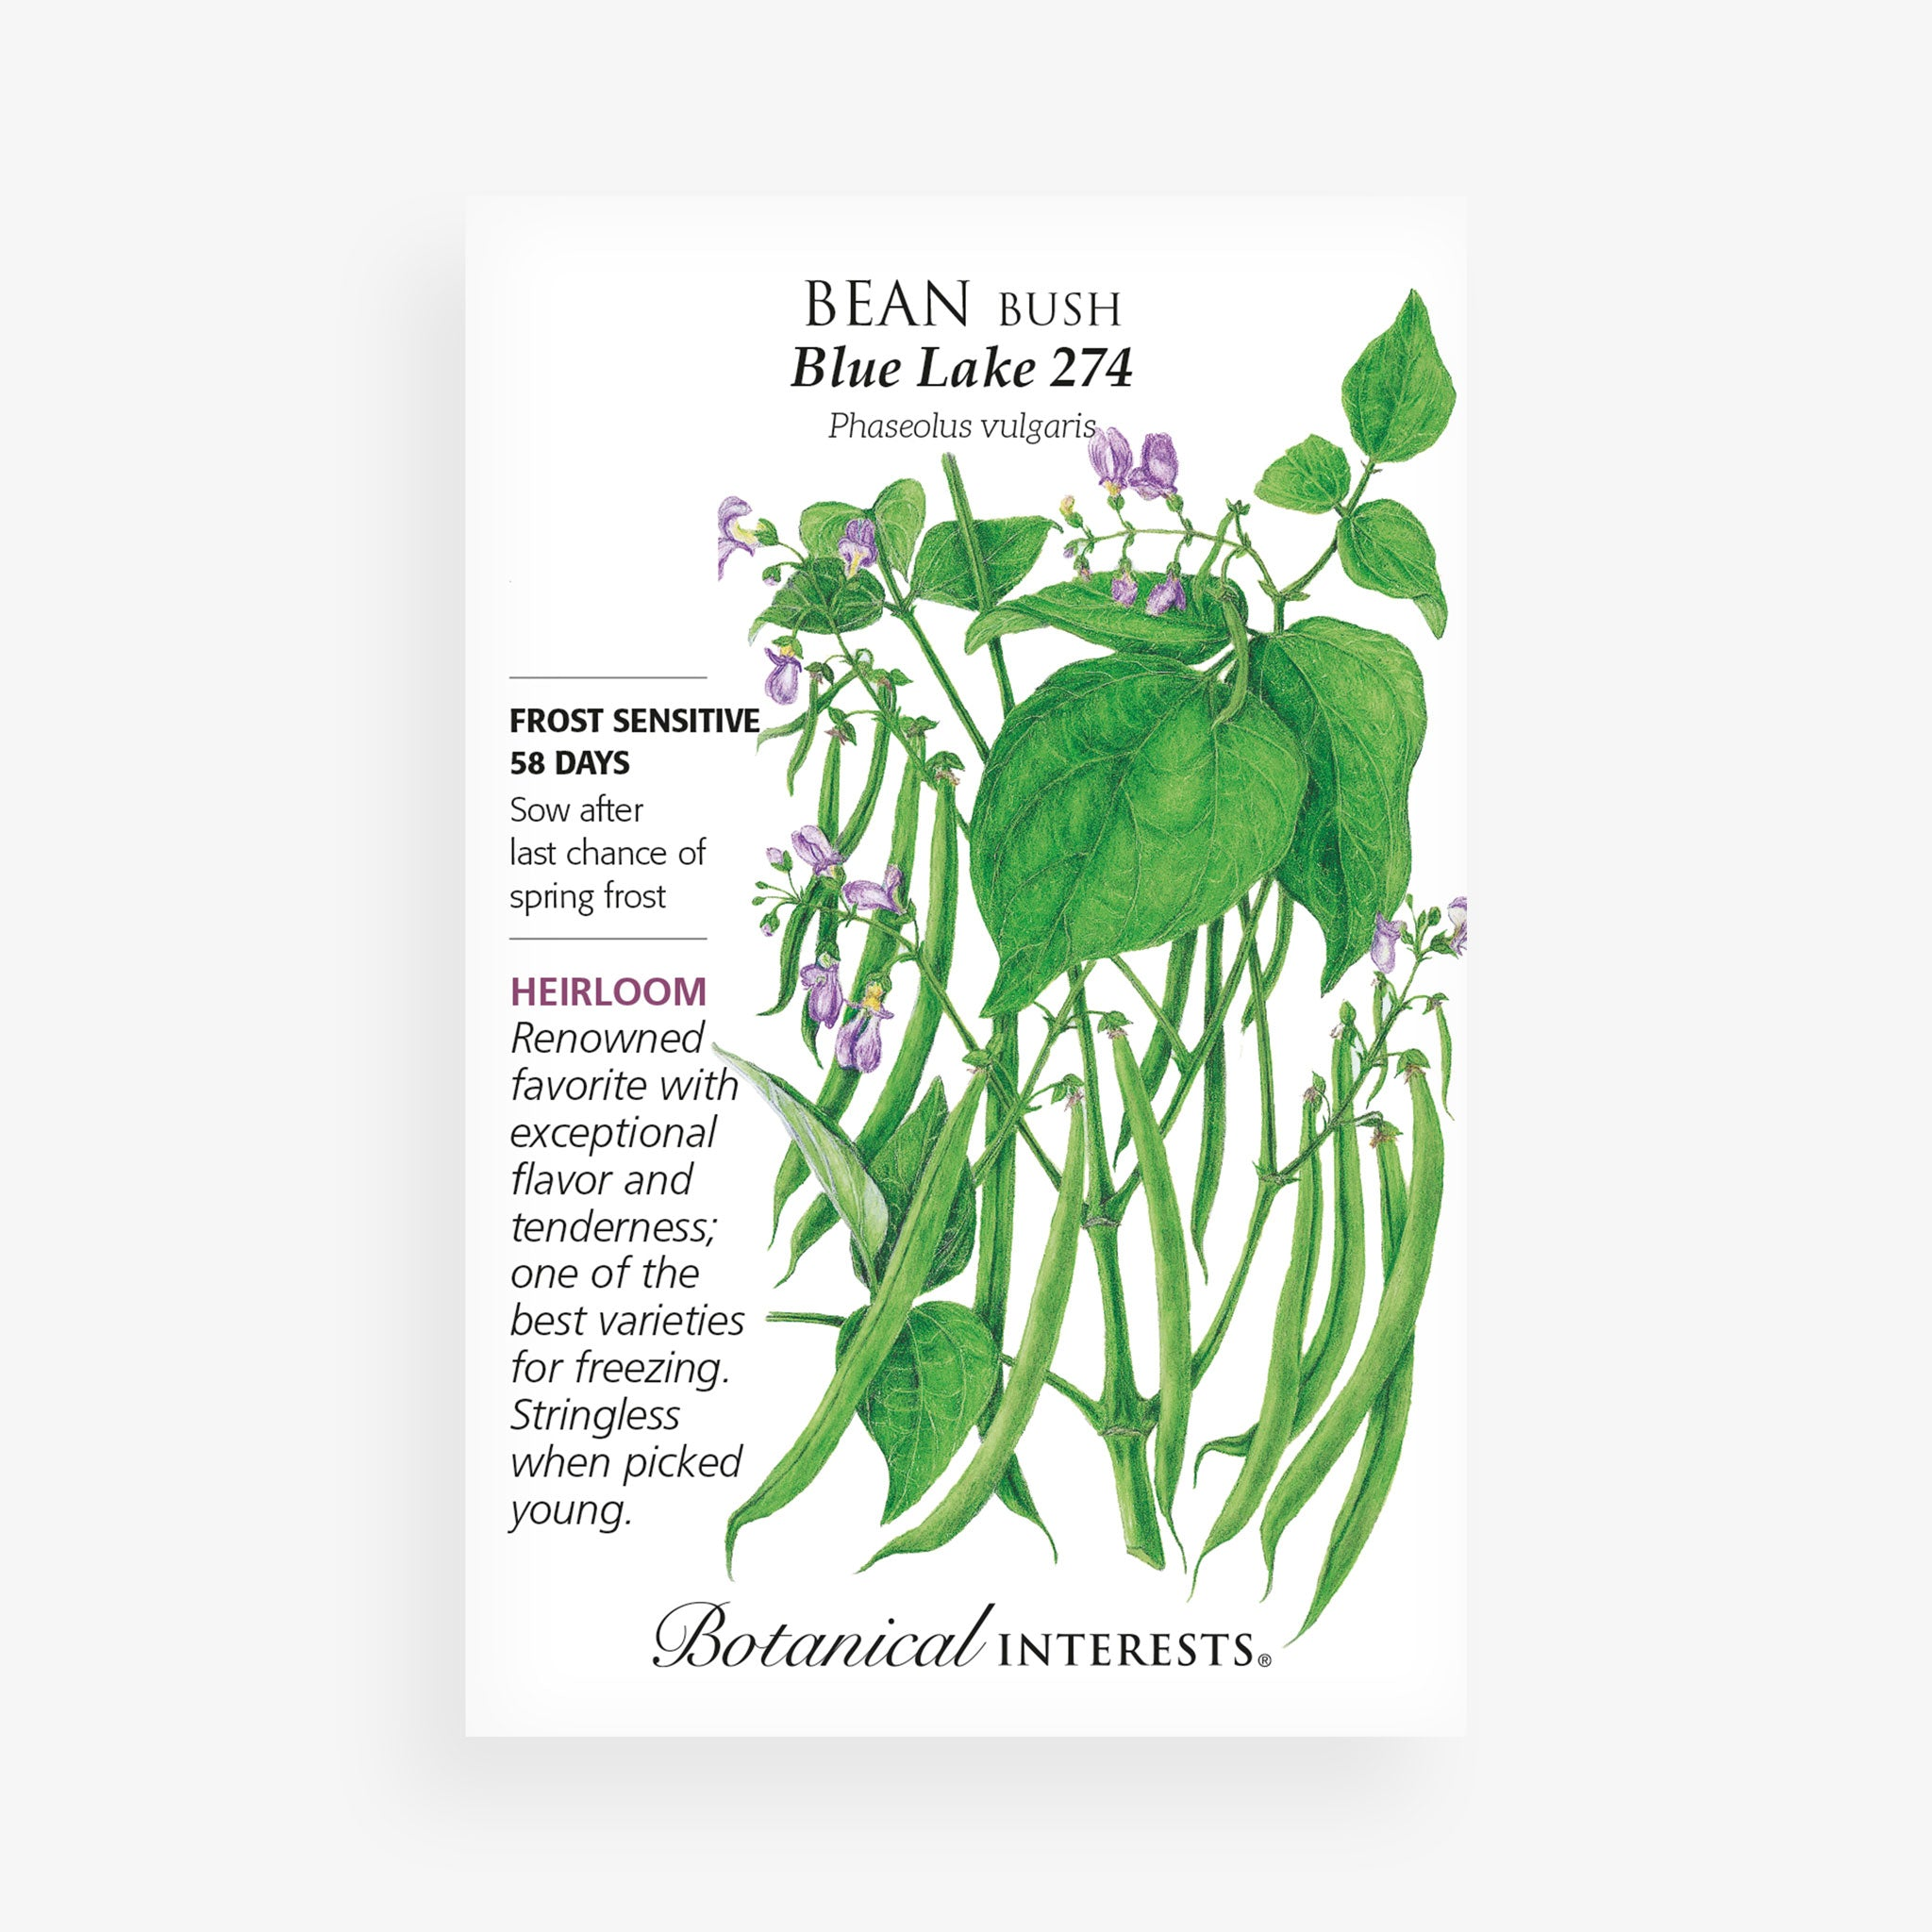 'Blue Lake 274' Bean Seed Packet